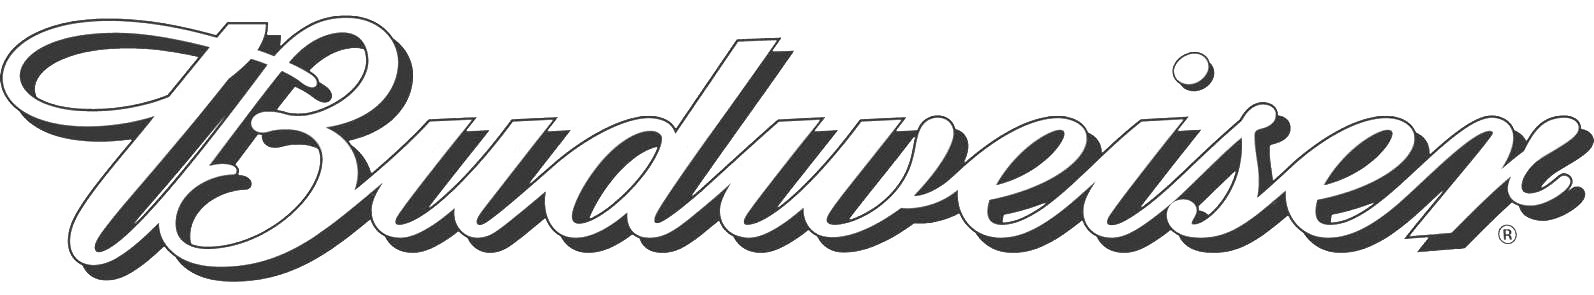 Budweiser clipart black and white Logo Neon on Copy Free